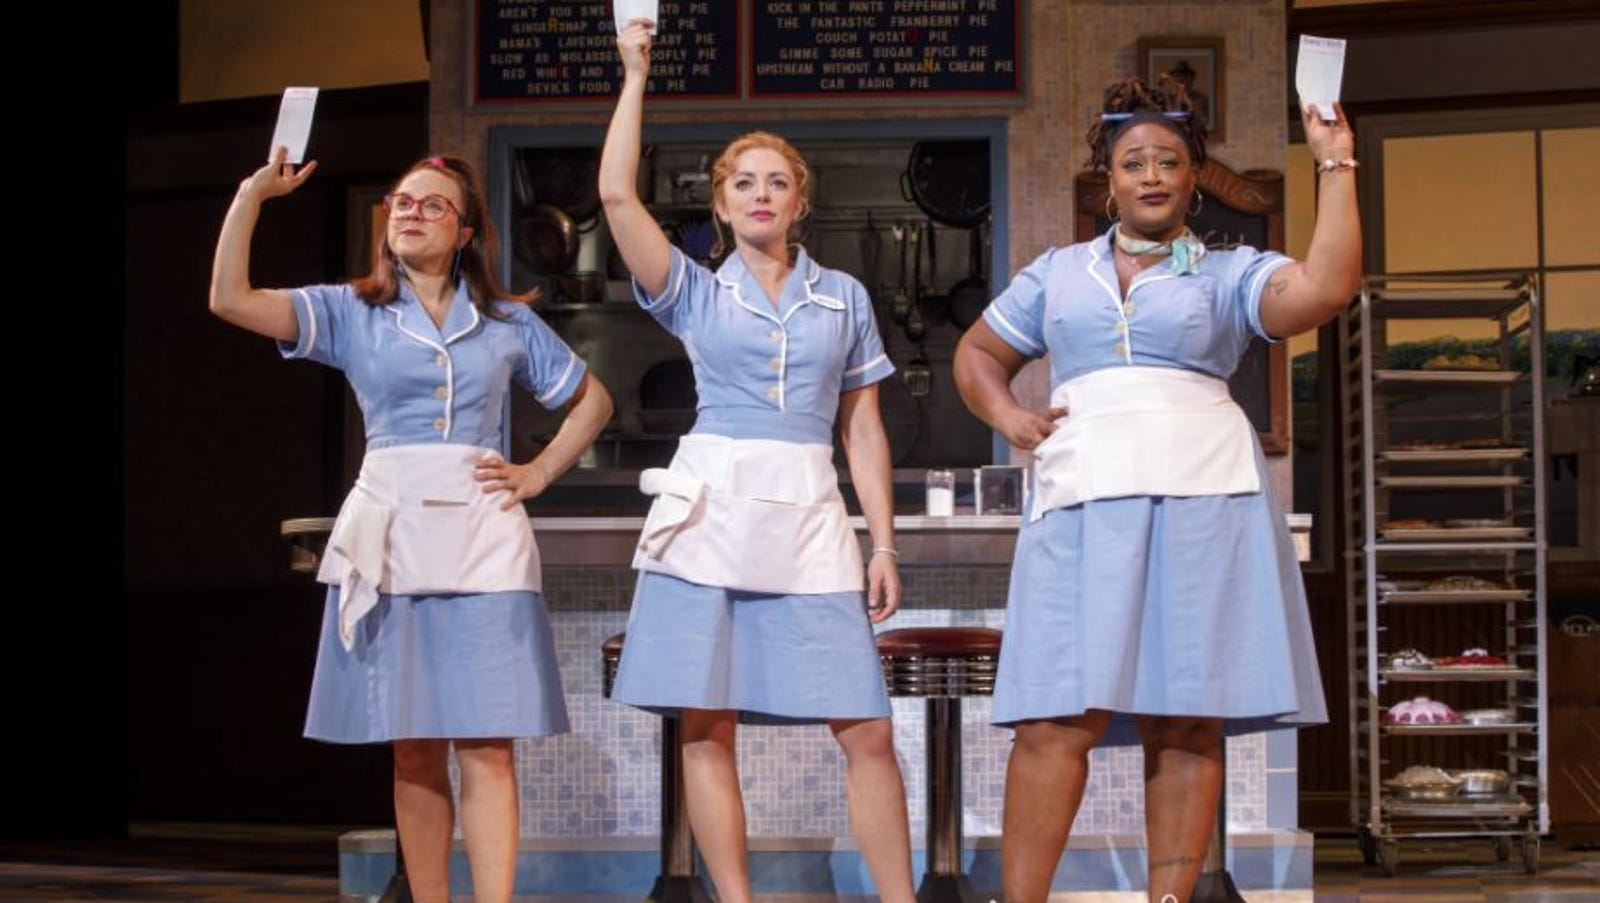 Waitress, Jersey Boys, The Color Purple coming to Stephens Auditorium 2019-2020 season